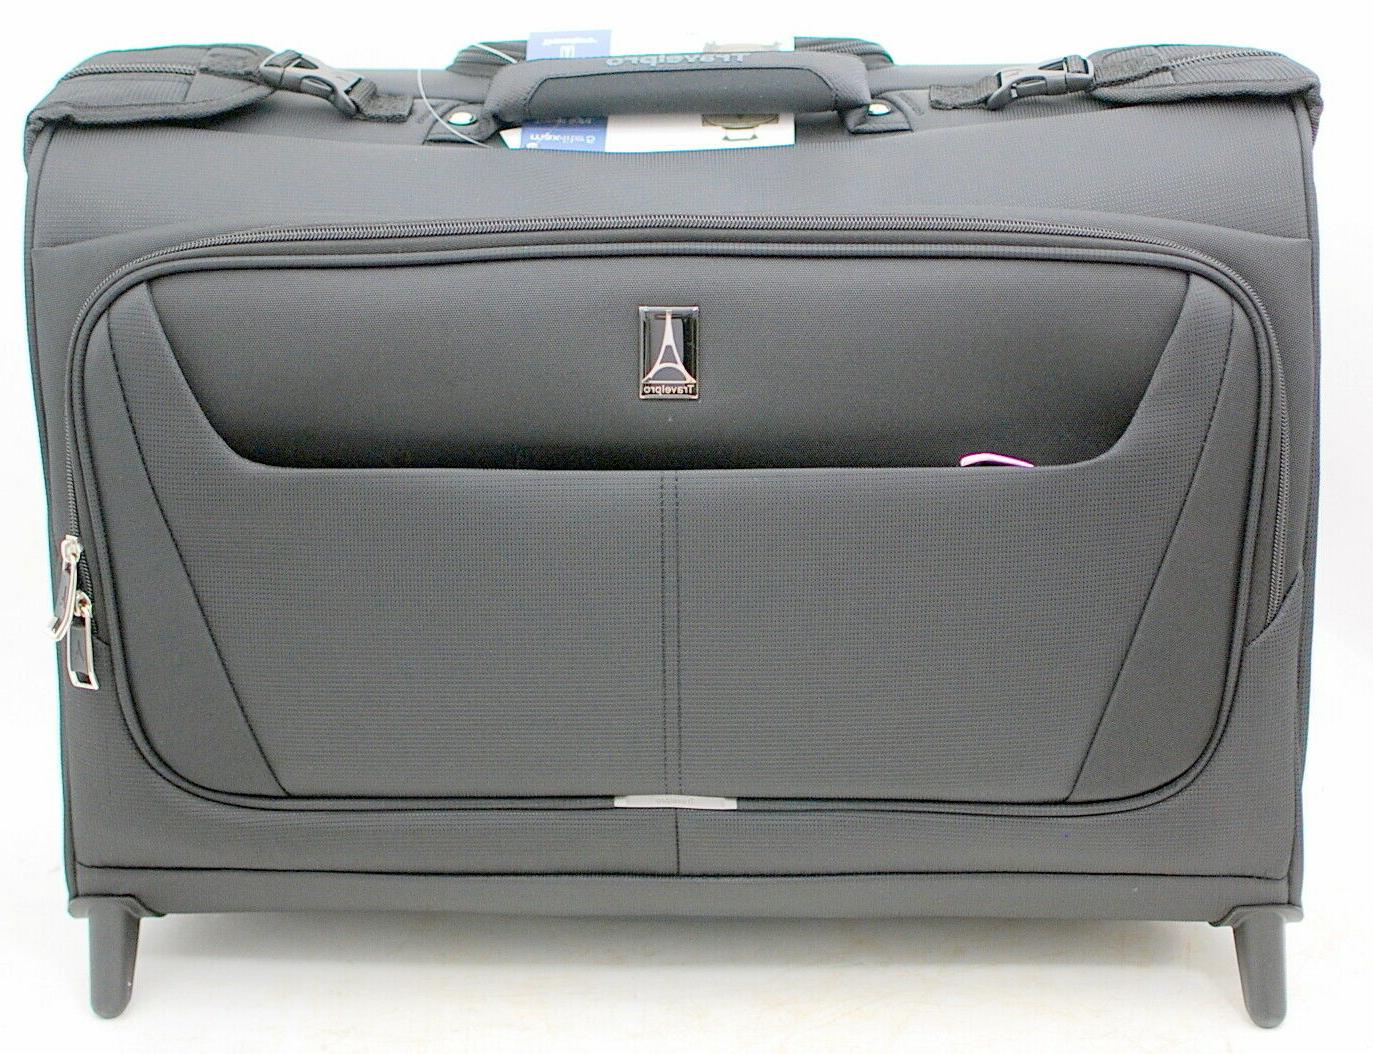 luggage maxlite 5 22 carry on rolling